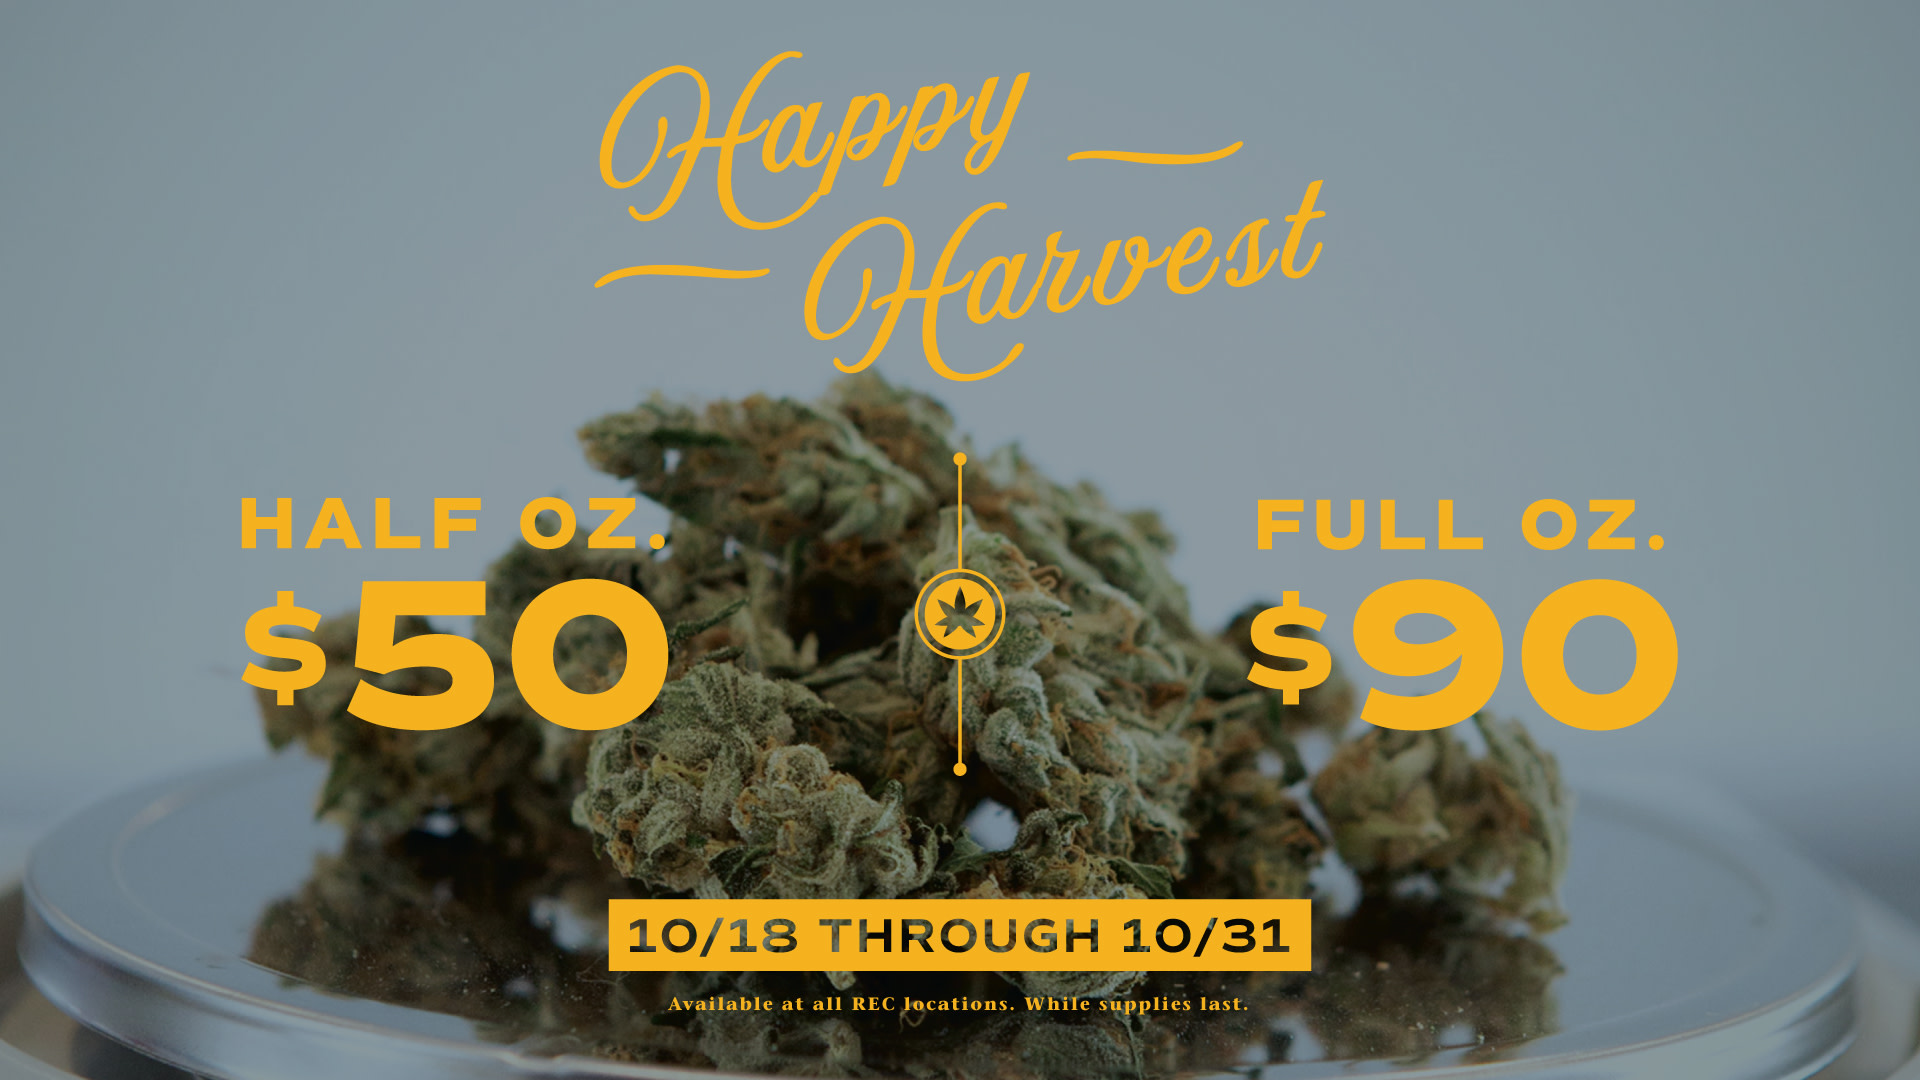 HAPPY HARVEST Weed deal from Native Roots Cannabis Company